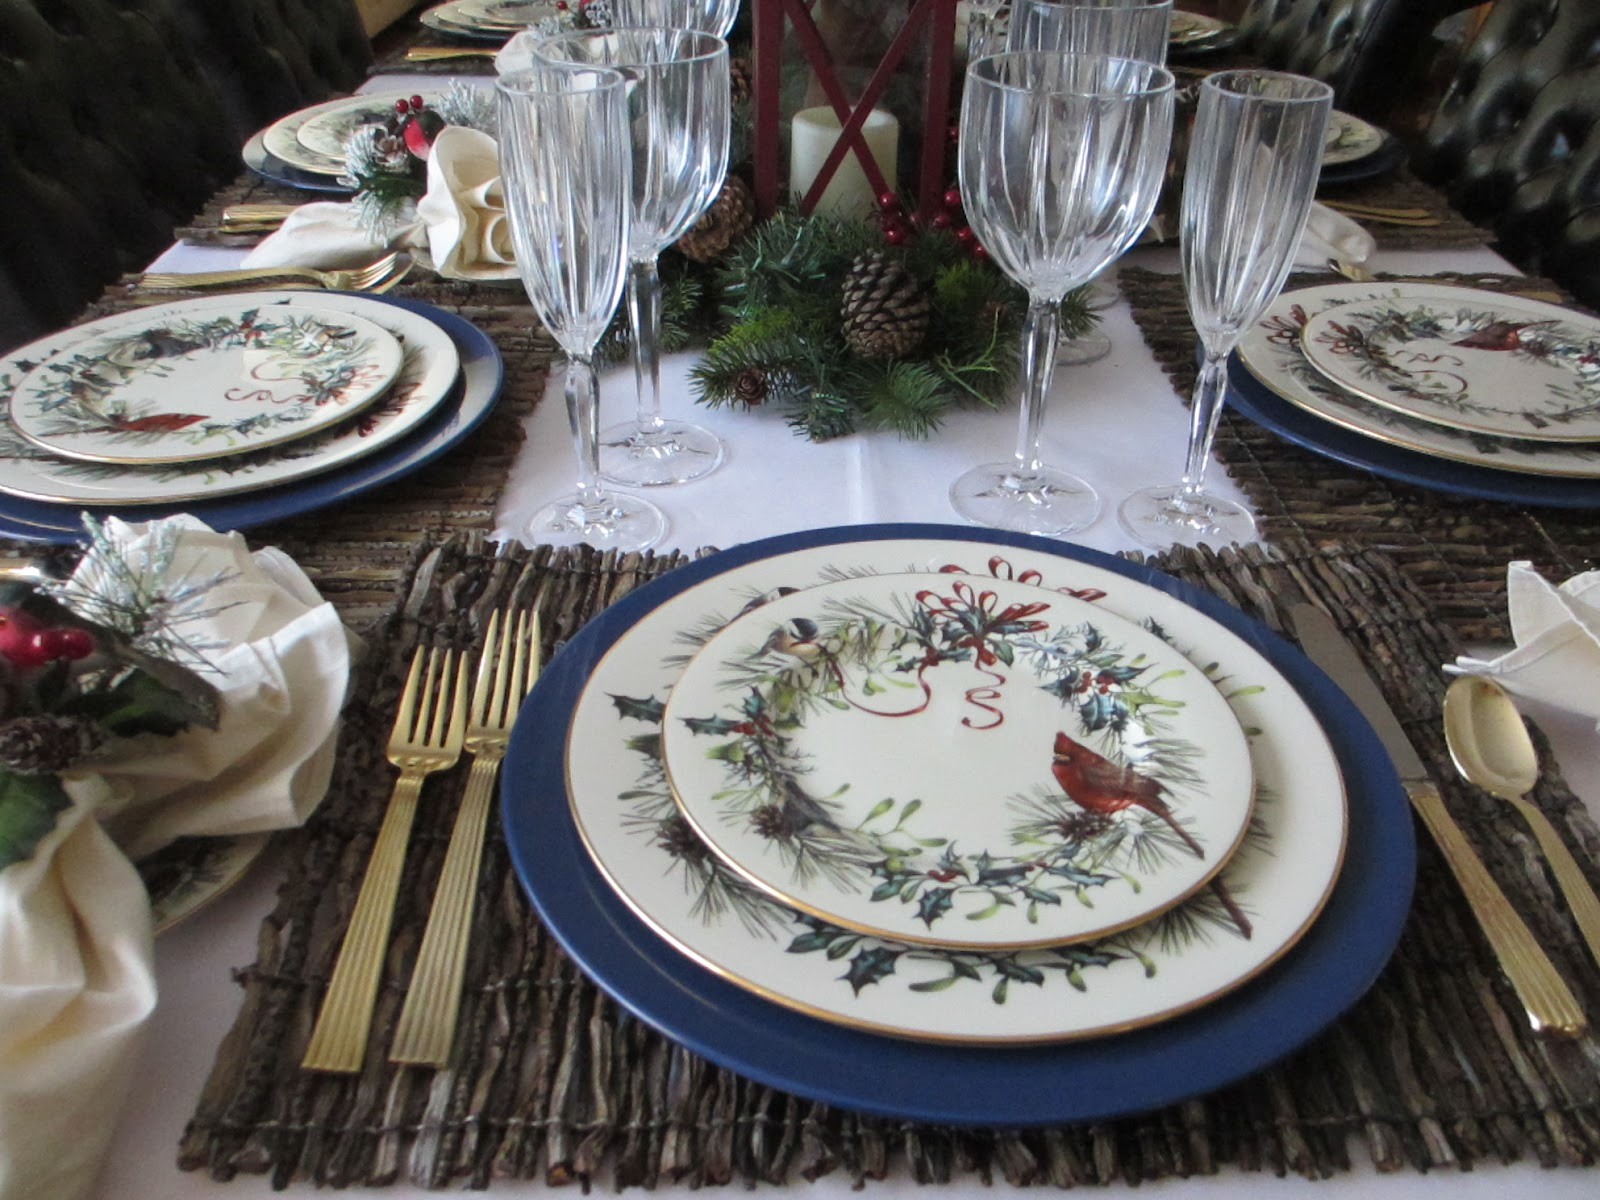 The welcomed guest lenox winter greetings tablescape the plates feature a cardinal and a chickadee among the pine and holly m4hsunfo